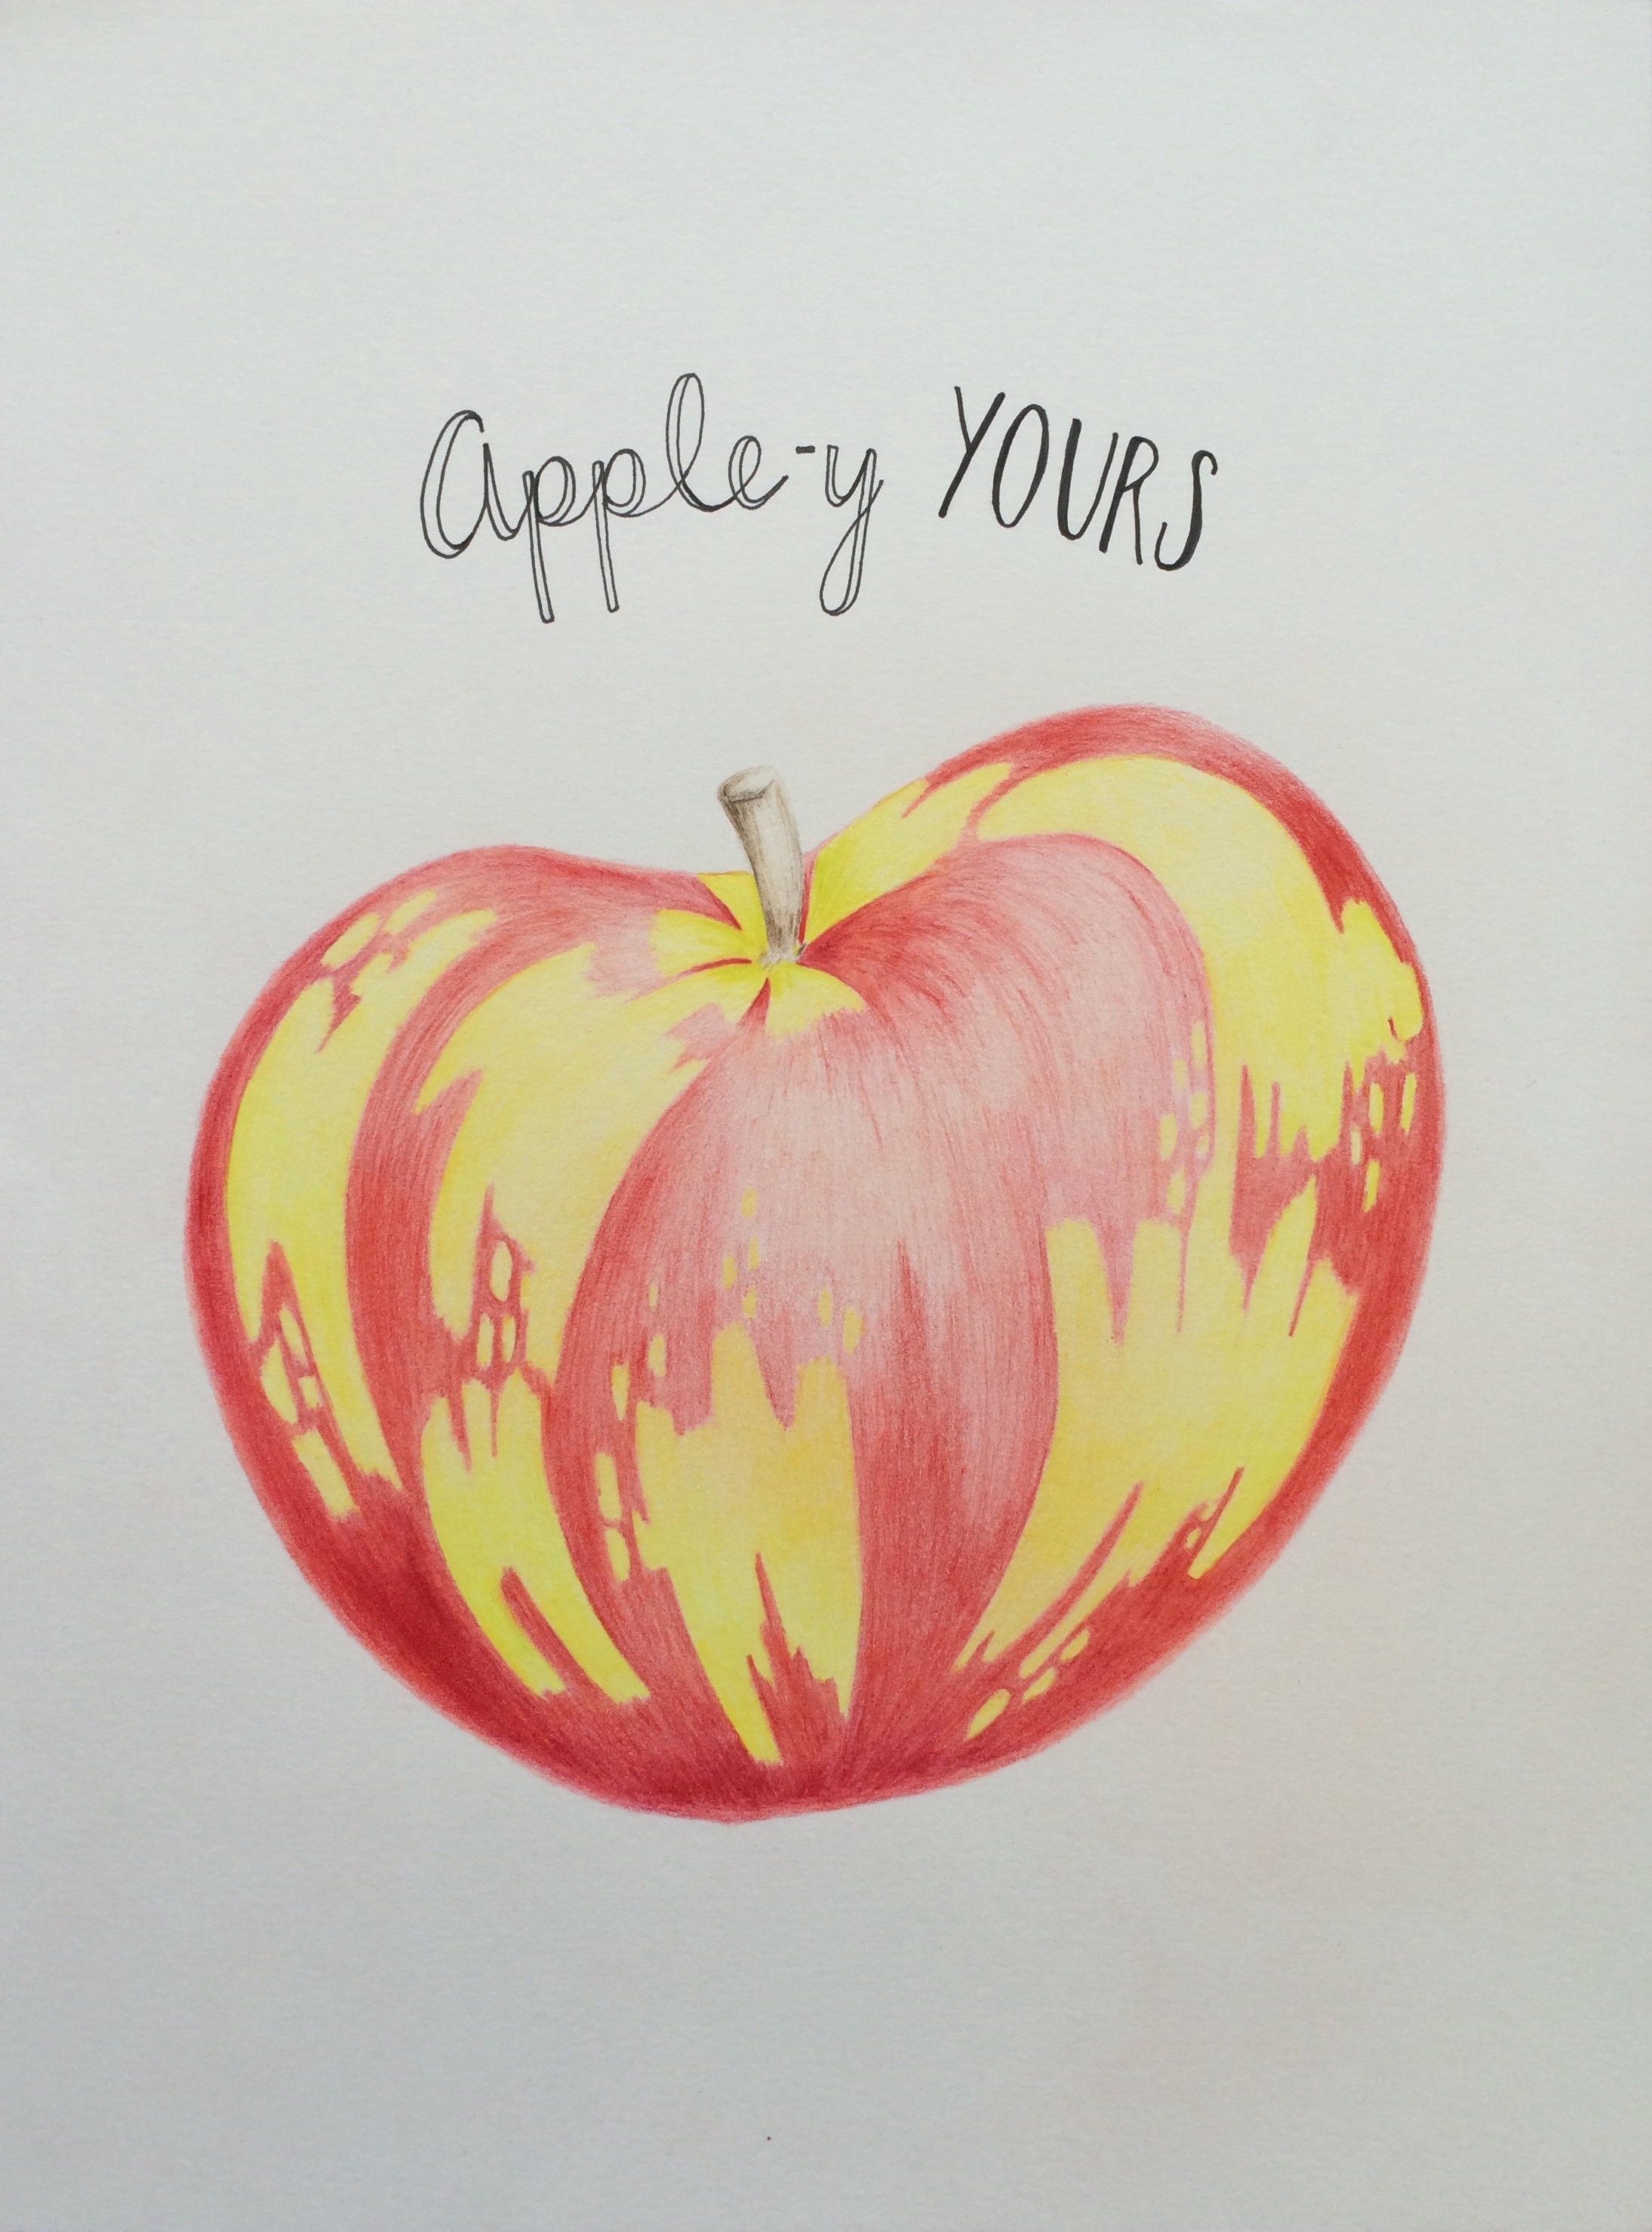 Apple-y Yours